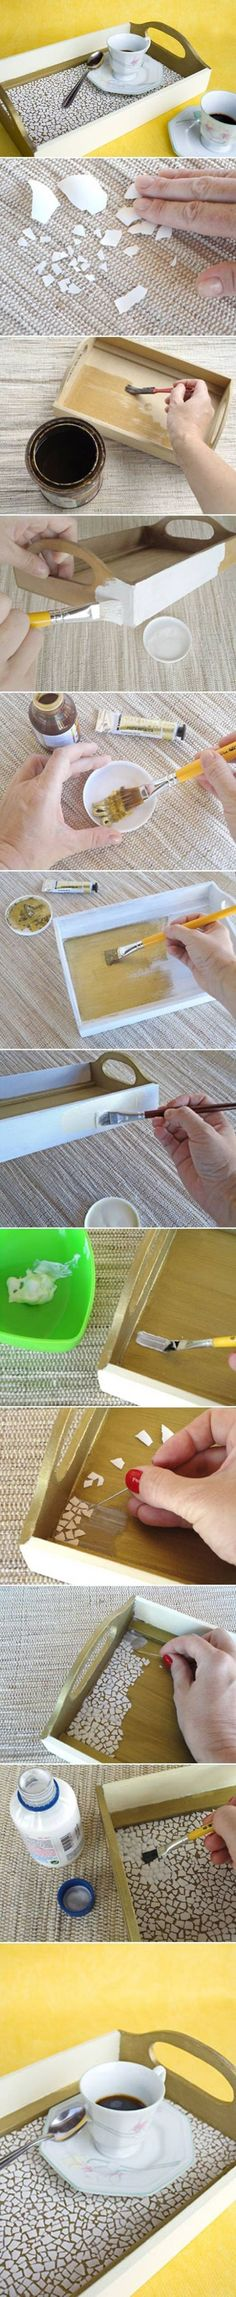 How to make Eggshell Mosaic Coffee Tray step by step DIY tutorial instructions / How To Instructions